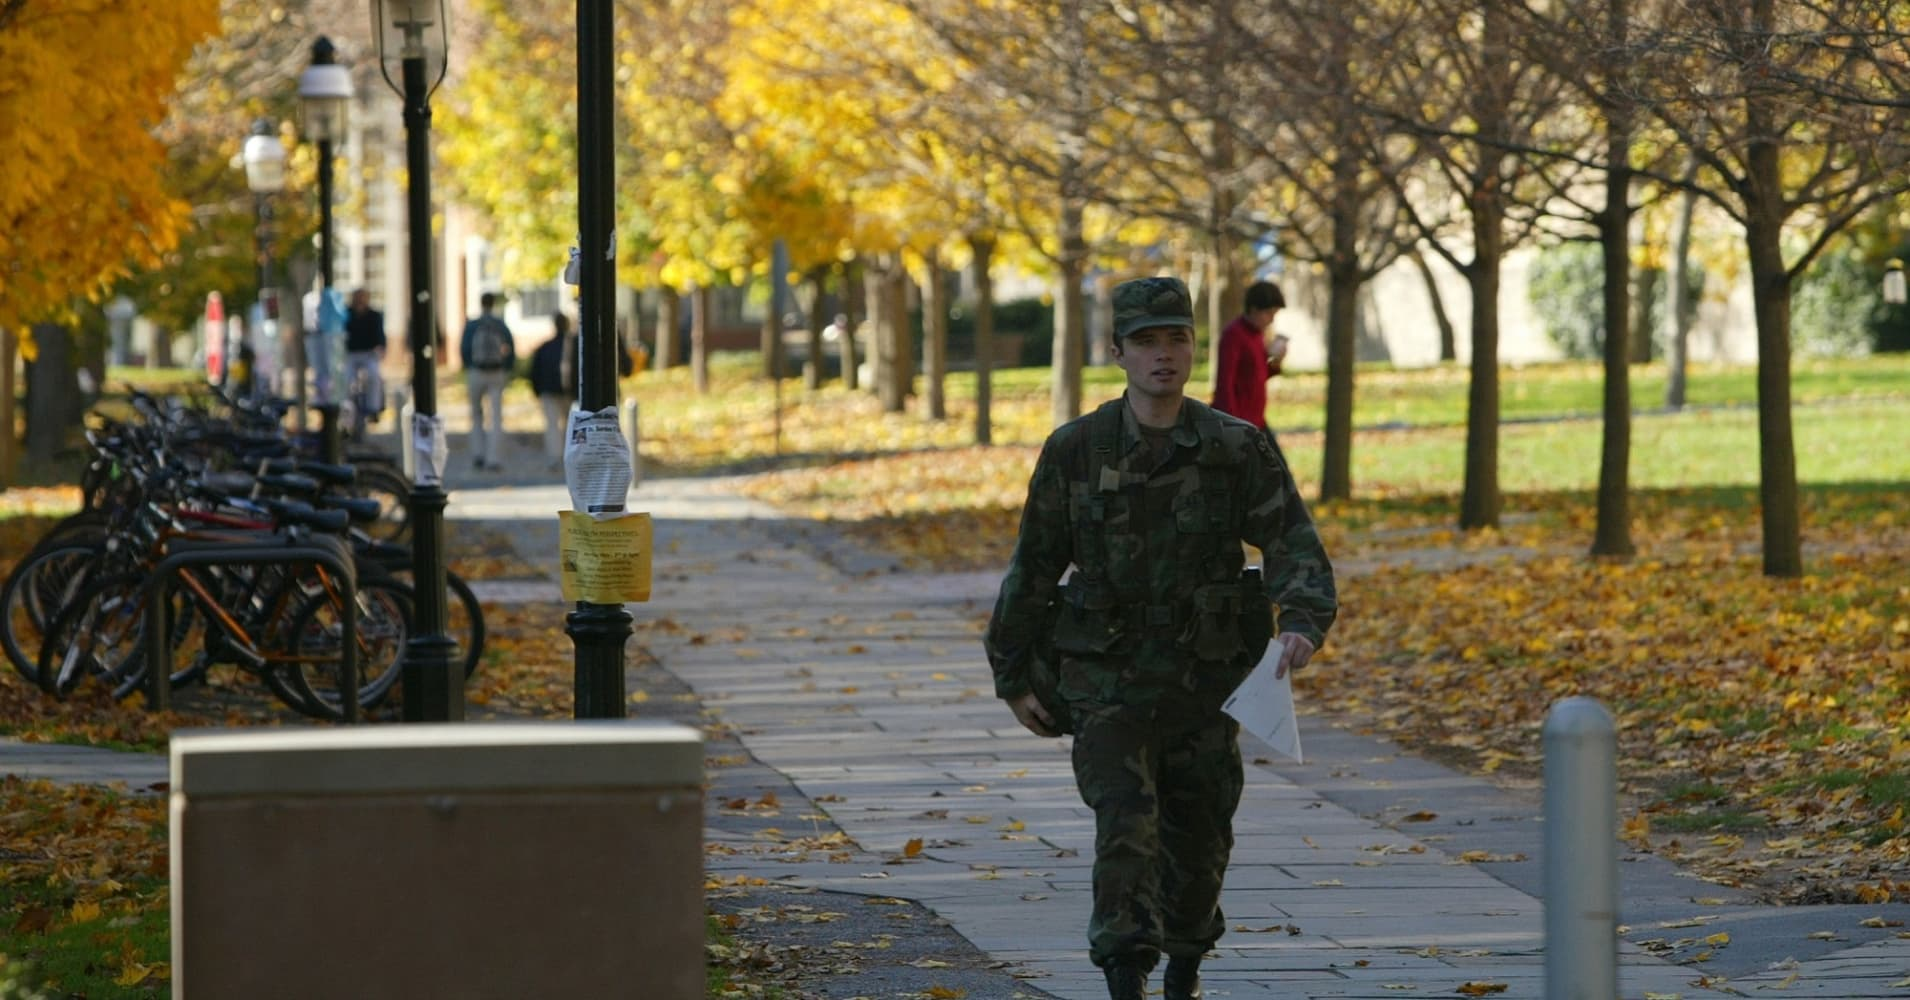 A Reserve Officer Training Corps (ROTC) cadet walks through campus in Princeton, New Jersey.